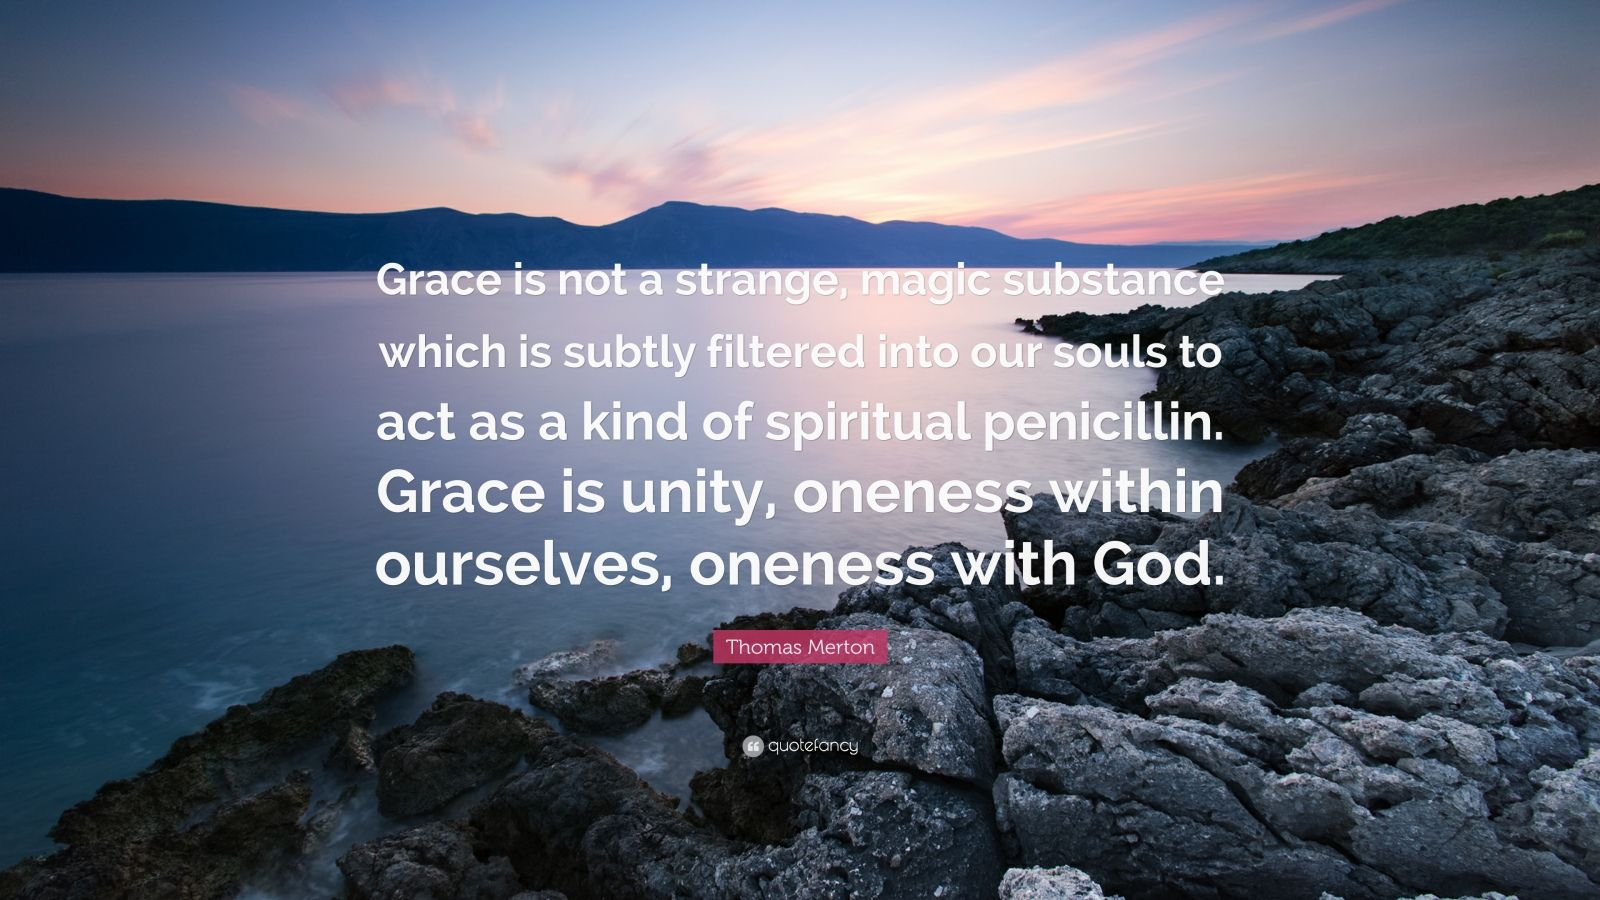 """Thomas Merton Quote: """"Grace is not a strange, magic substance which is subtly filtered into our souls to act as a kind of spiritual penicillin. Grace is unity, oneness within ourselves, oneness with God."""""""